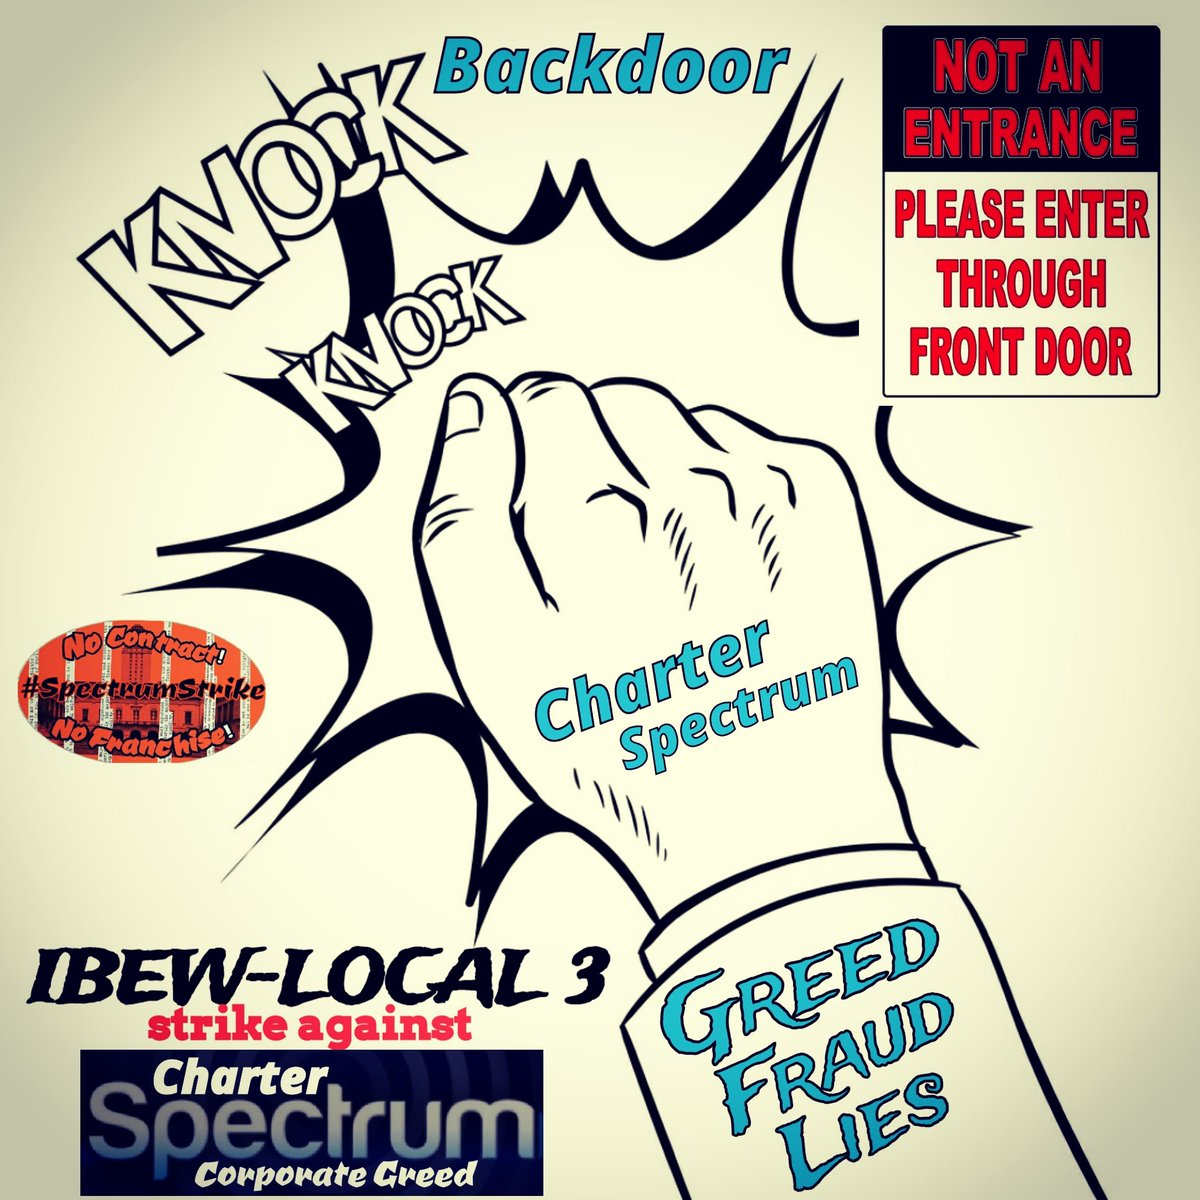 Day1191 Brothas & Sisthas dark alleyways and backdoor deals; are the comfort zones of corporate greed like our Charter/Spectrum. Let's highlight not just them; but whomever is opening the backdoor #SpectrumStrike #Local3 #FairContractNow #corporategreed #NoContractNoFranchise2020<br>http://pic.twitter.com/WxMdHJL23W